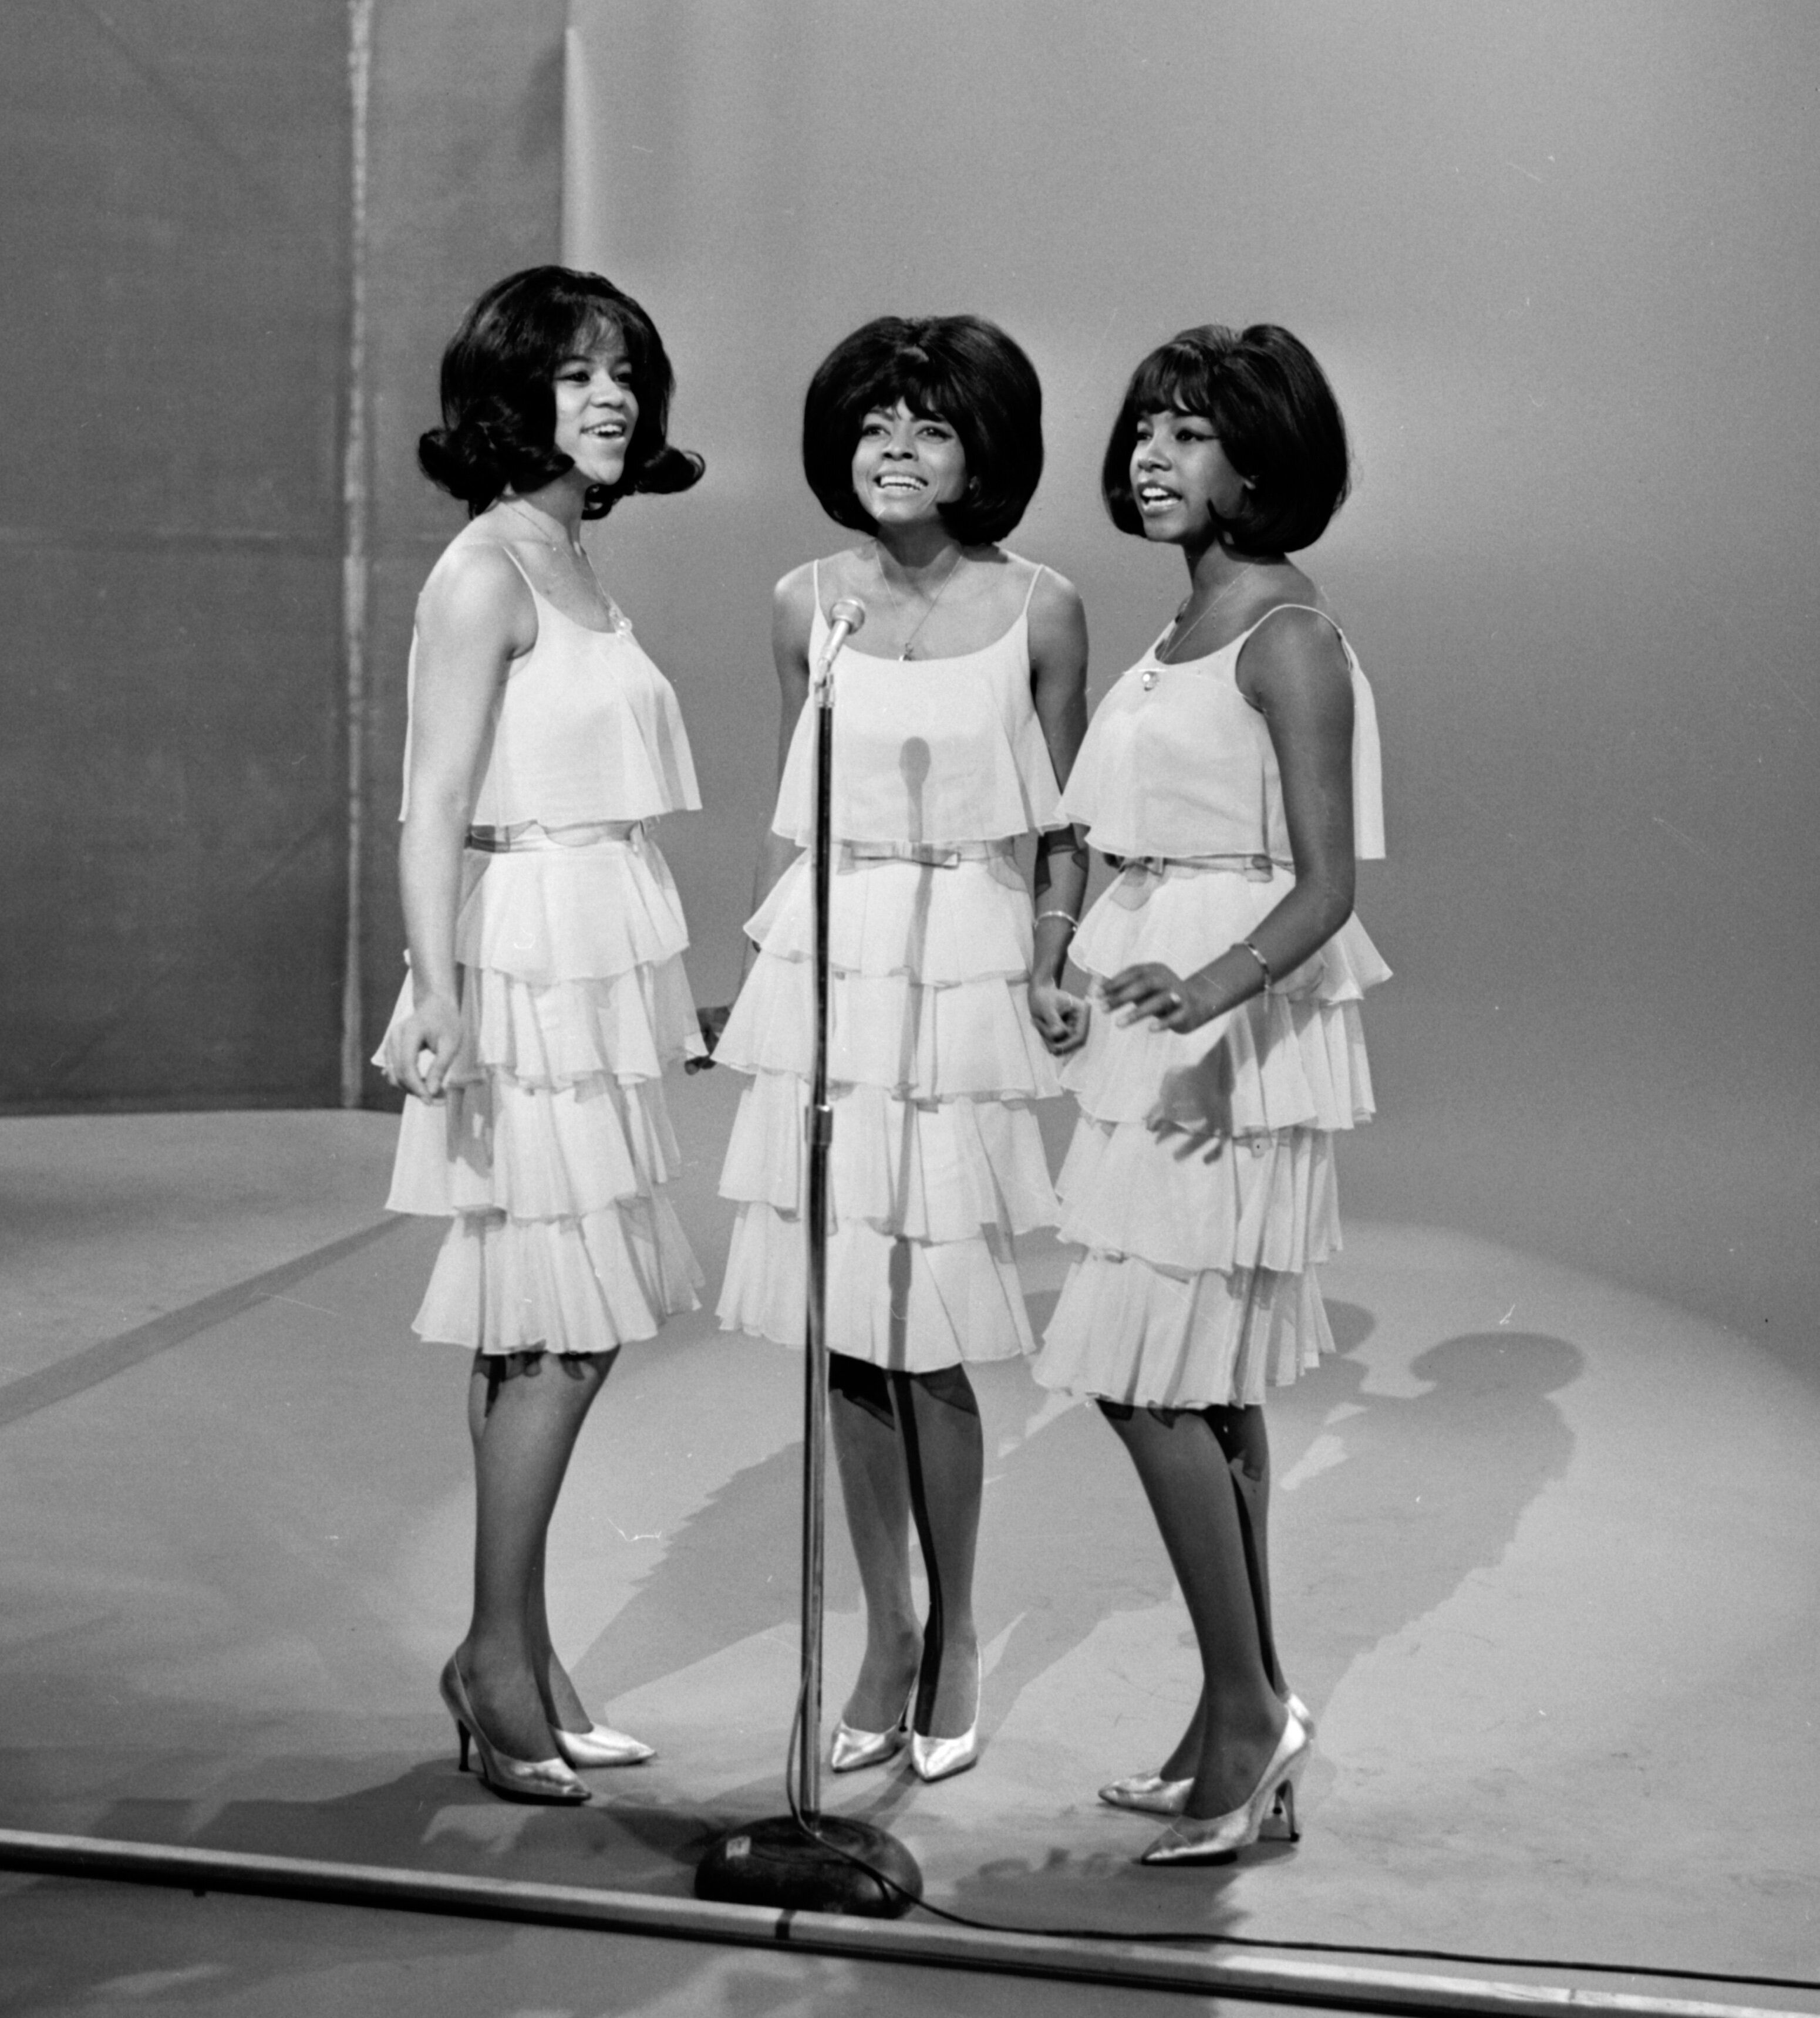 """The Supremes performed on """"The Ed Sullivan Show,"""" in 1964. From left: Florence Ballard, Diana Ross and Mary Wilson."""